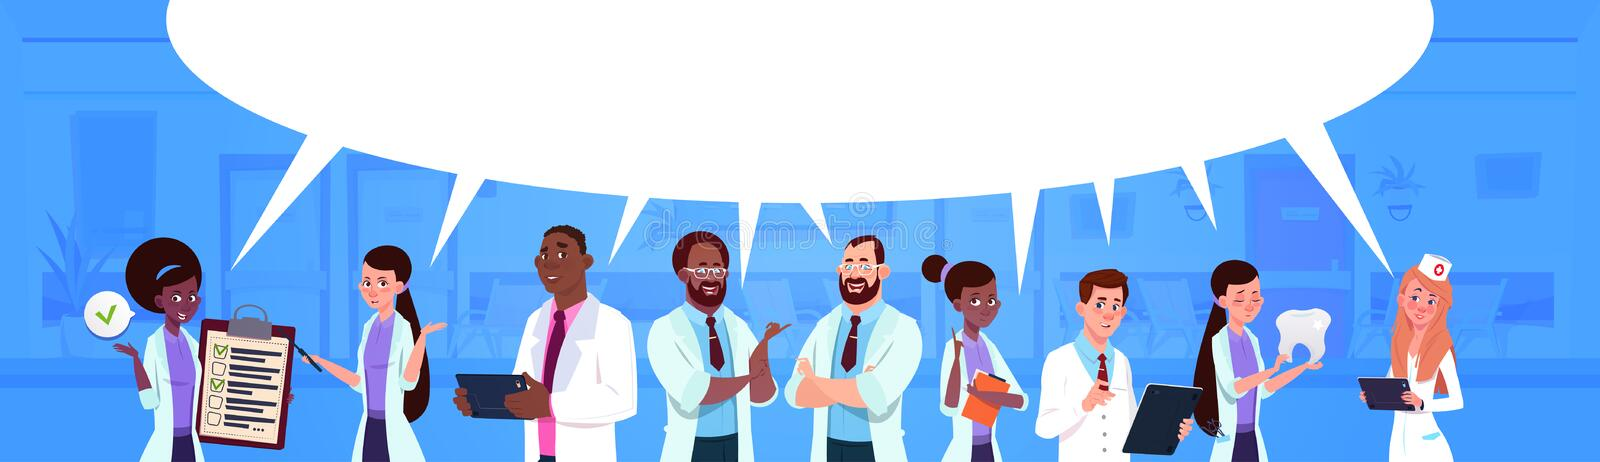 Mix Race Team Of Doctors Standing Over White Chat Bubble Background Medicine And Healthcare Concept. Flat Vector Illustration royalty free illustration